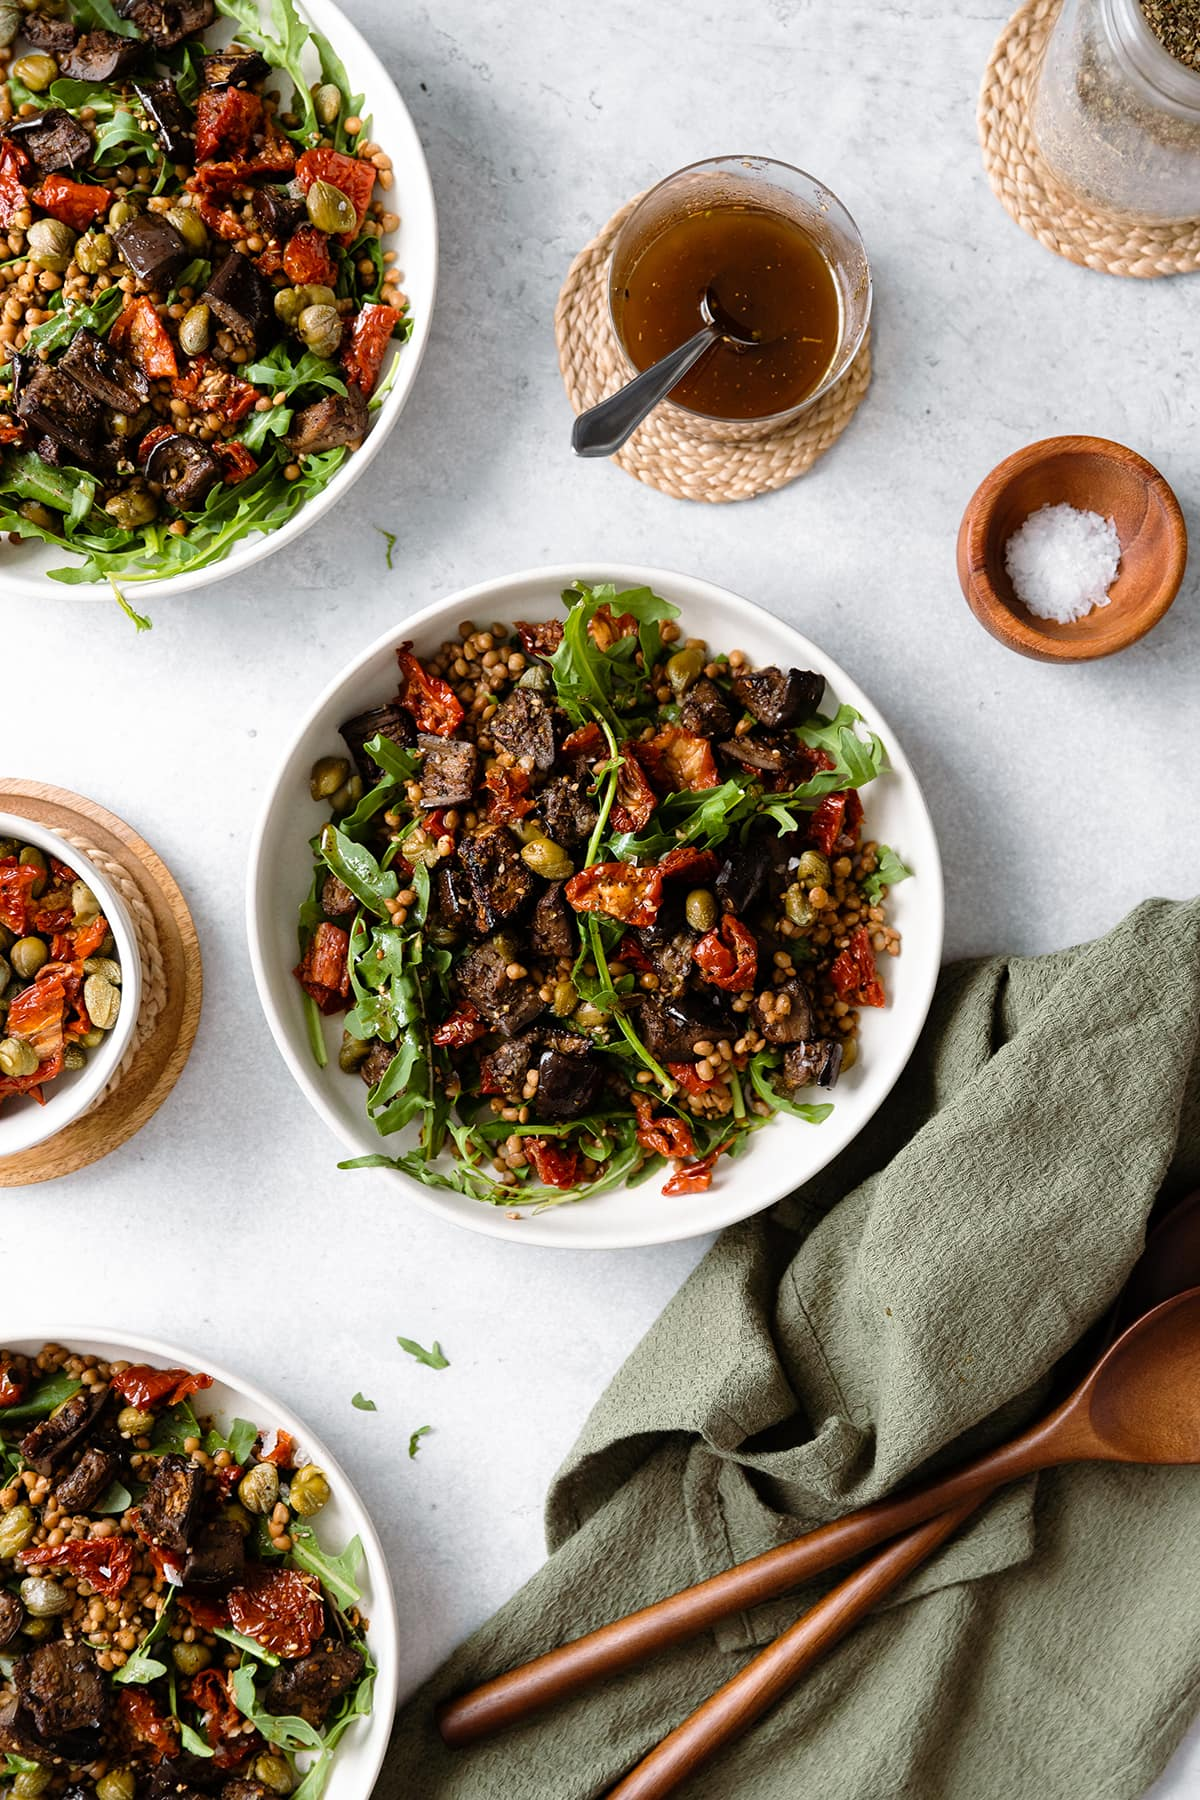 Za'atar Roasted Eggplant Lentil Salad with Sundried Tomatoes in white bowl on a grey background